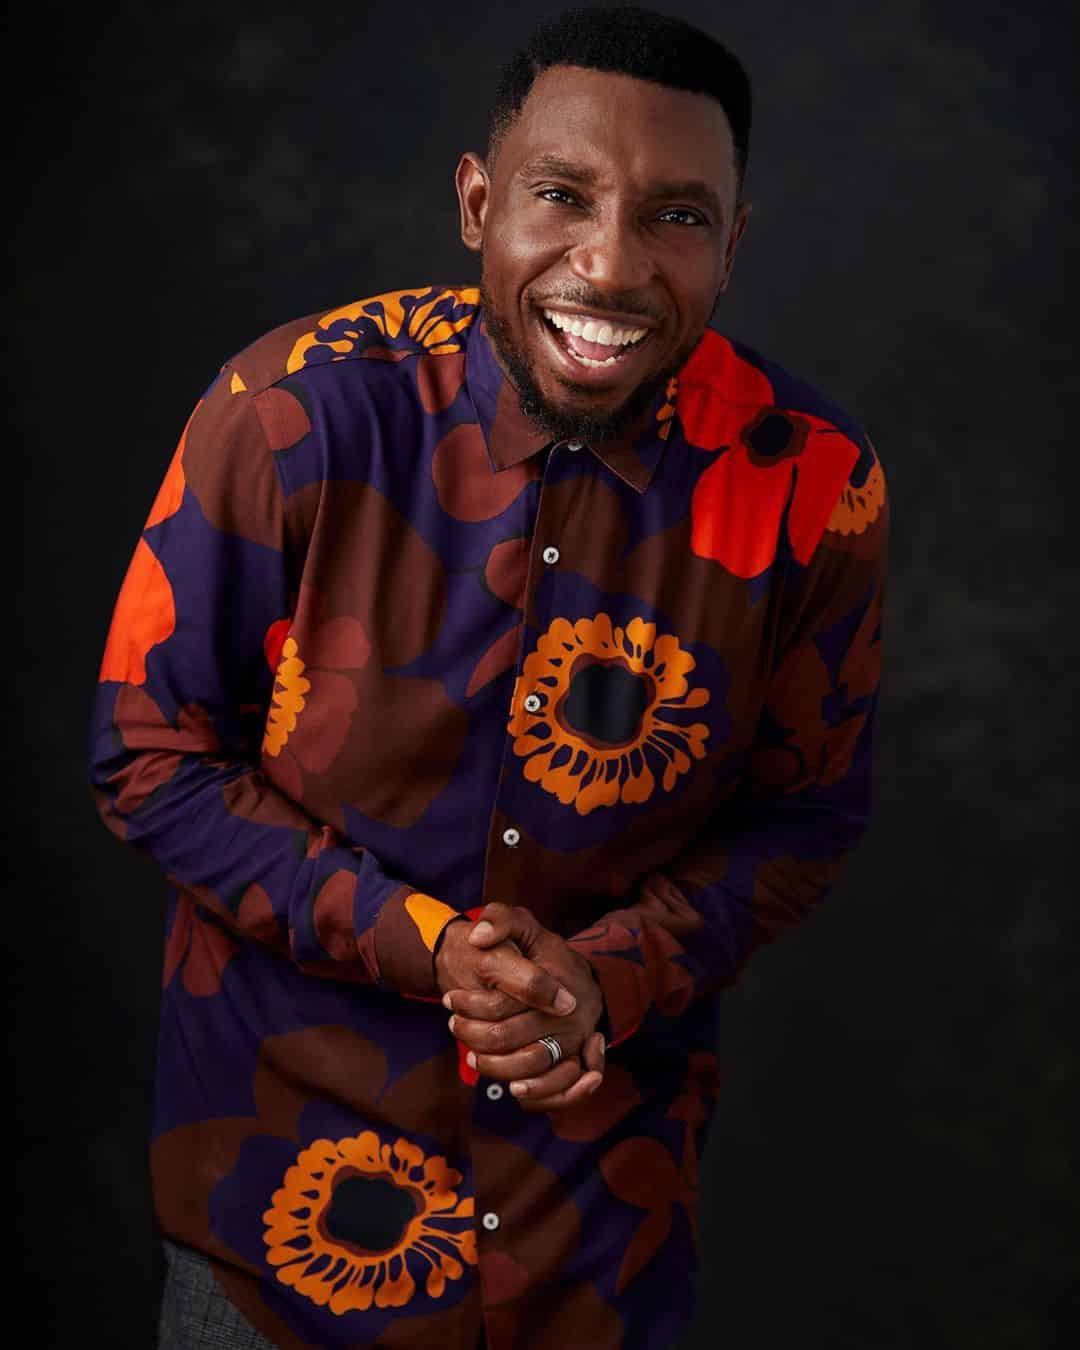 Singer Timi Dakolo tweets about his entitled cousin